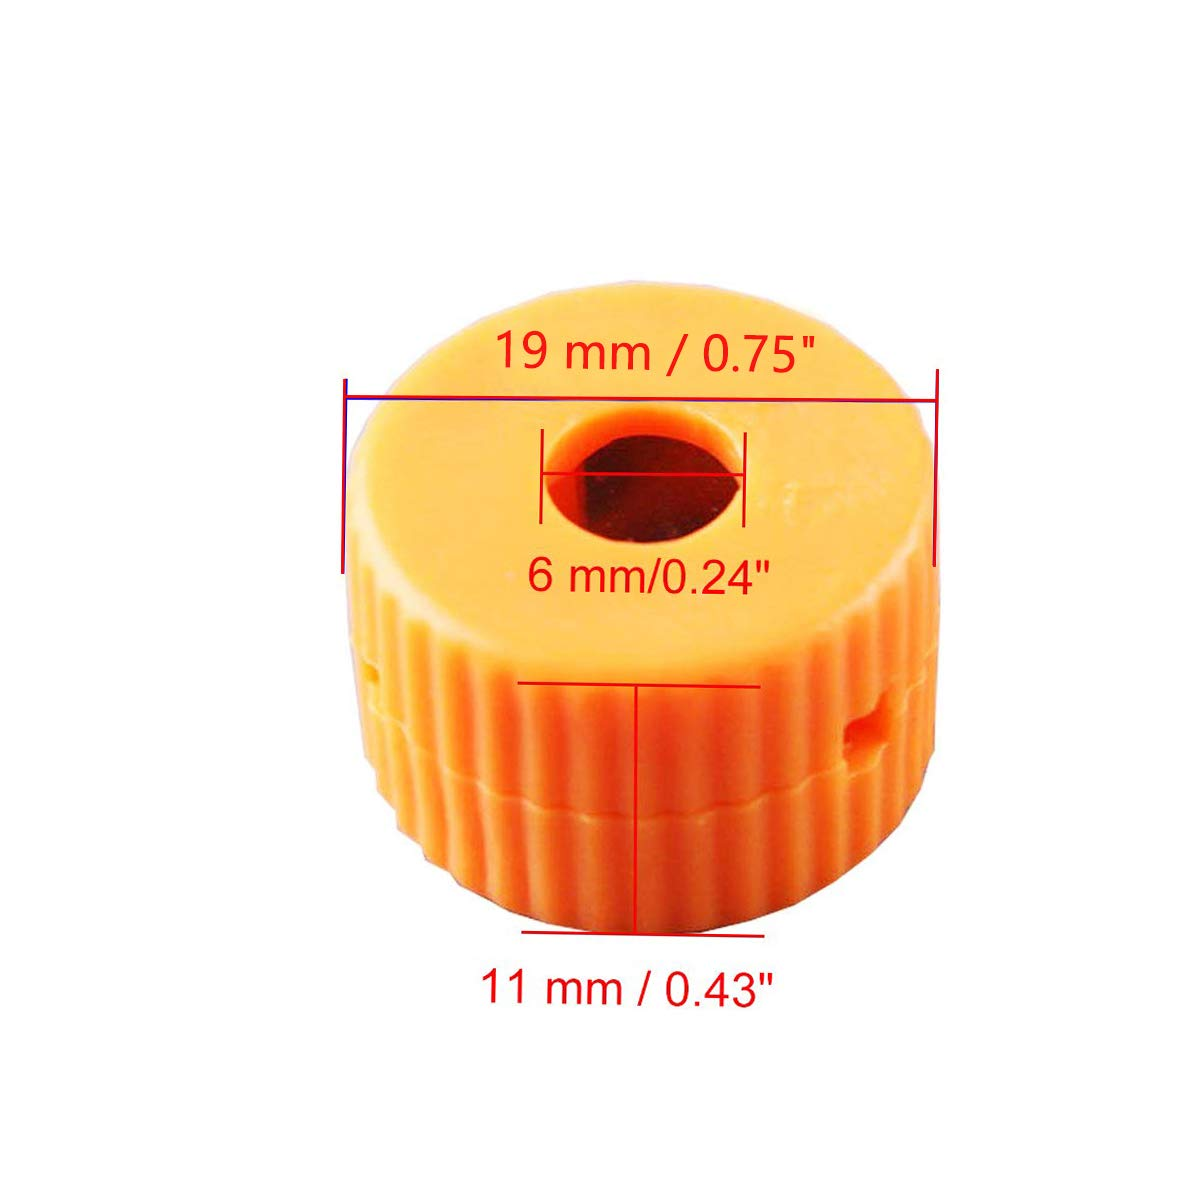 COMOK 6pcs 6mm Hole Dia Magnetizer and Demagnetizer for Screwdriver Bits and Tips Powerful Rare-Earth Magnet Orange